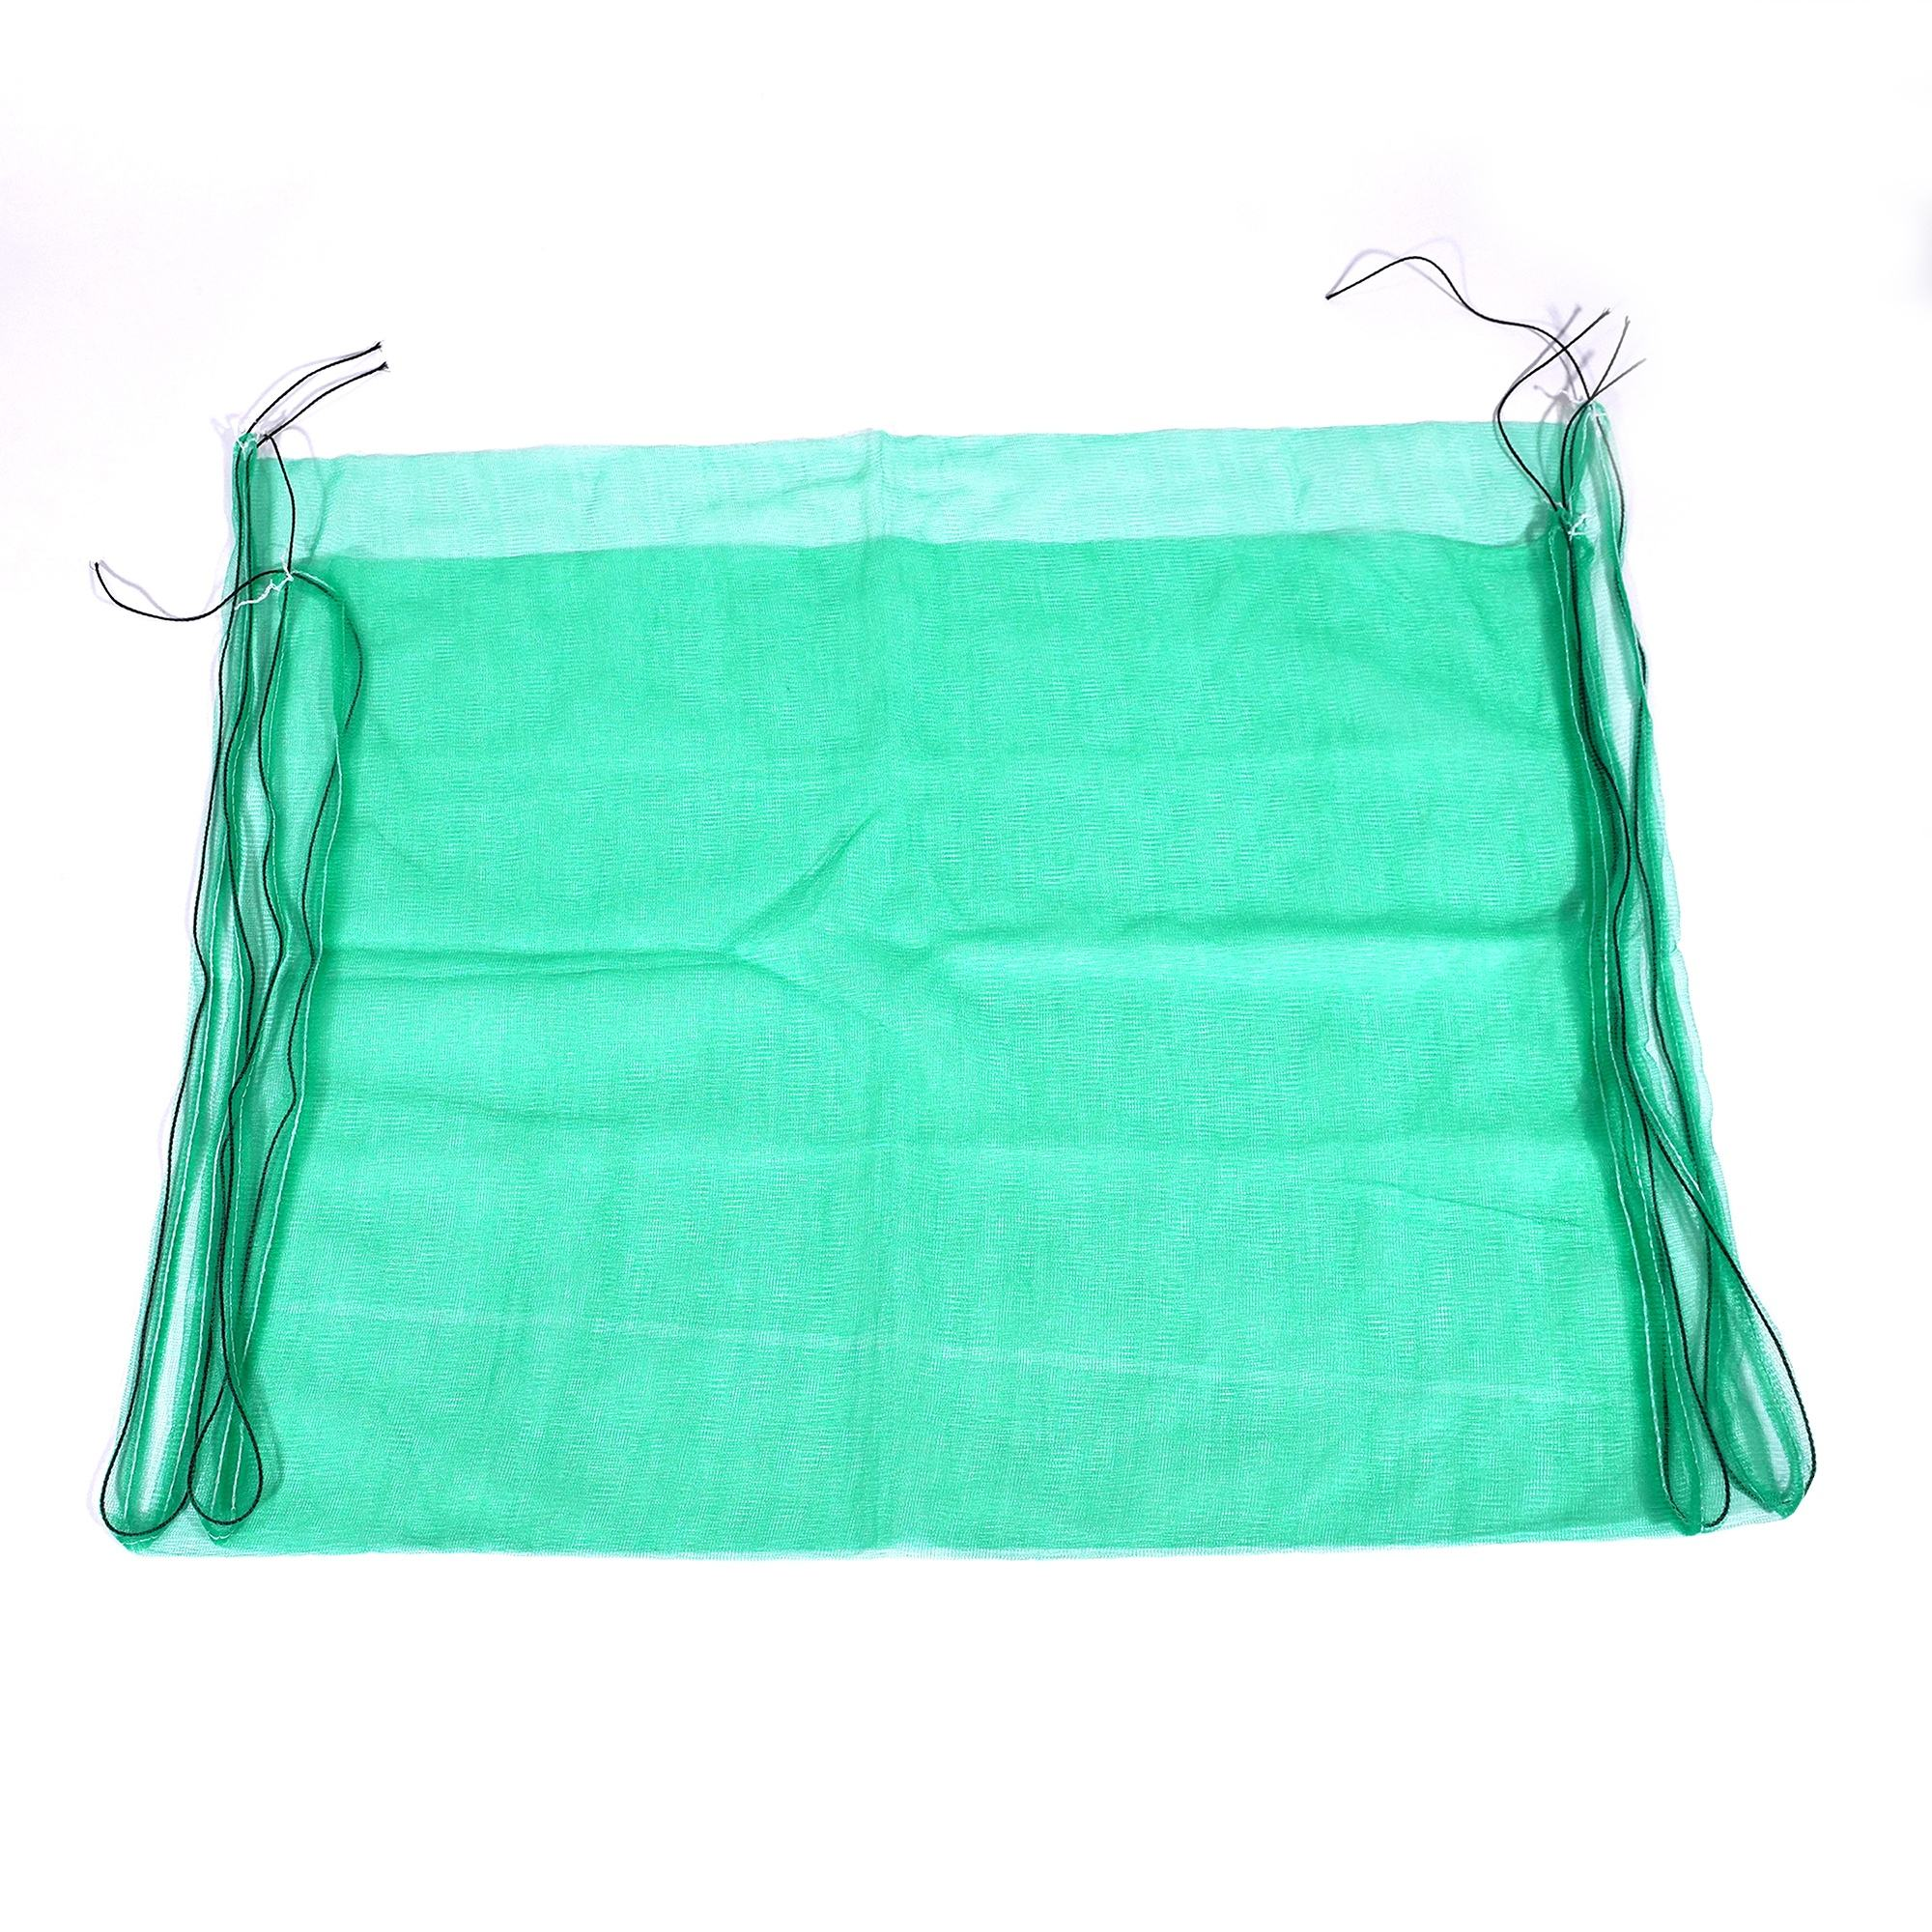 China factory 70x90cm 80x100cm green dates fruit packaging hdpe monofilament mesh bag palm date bag